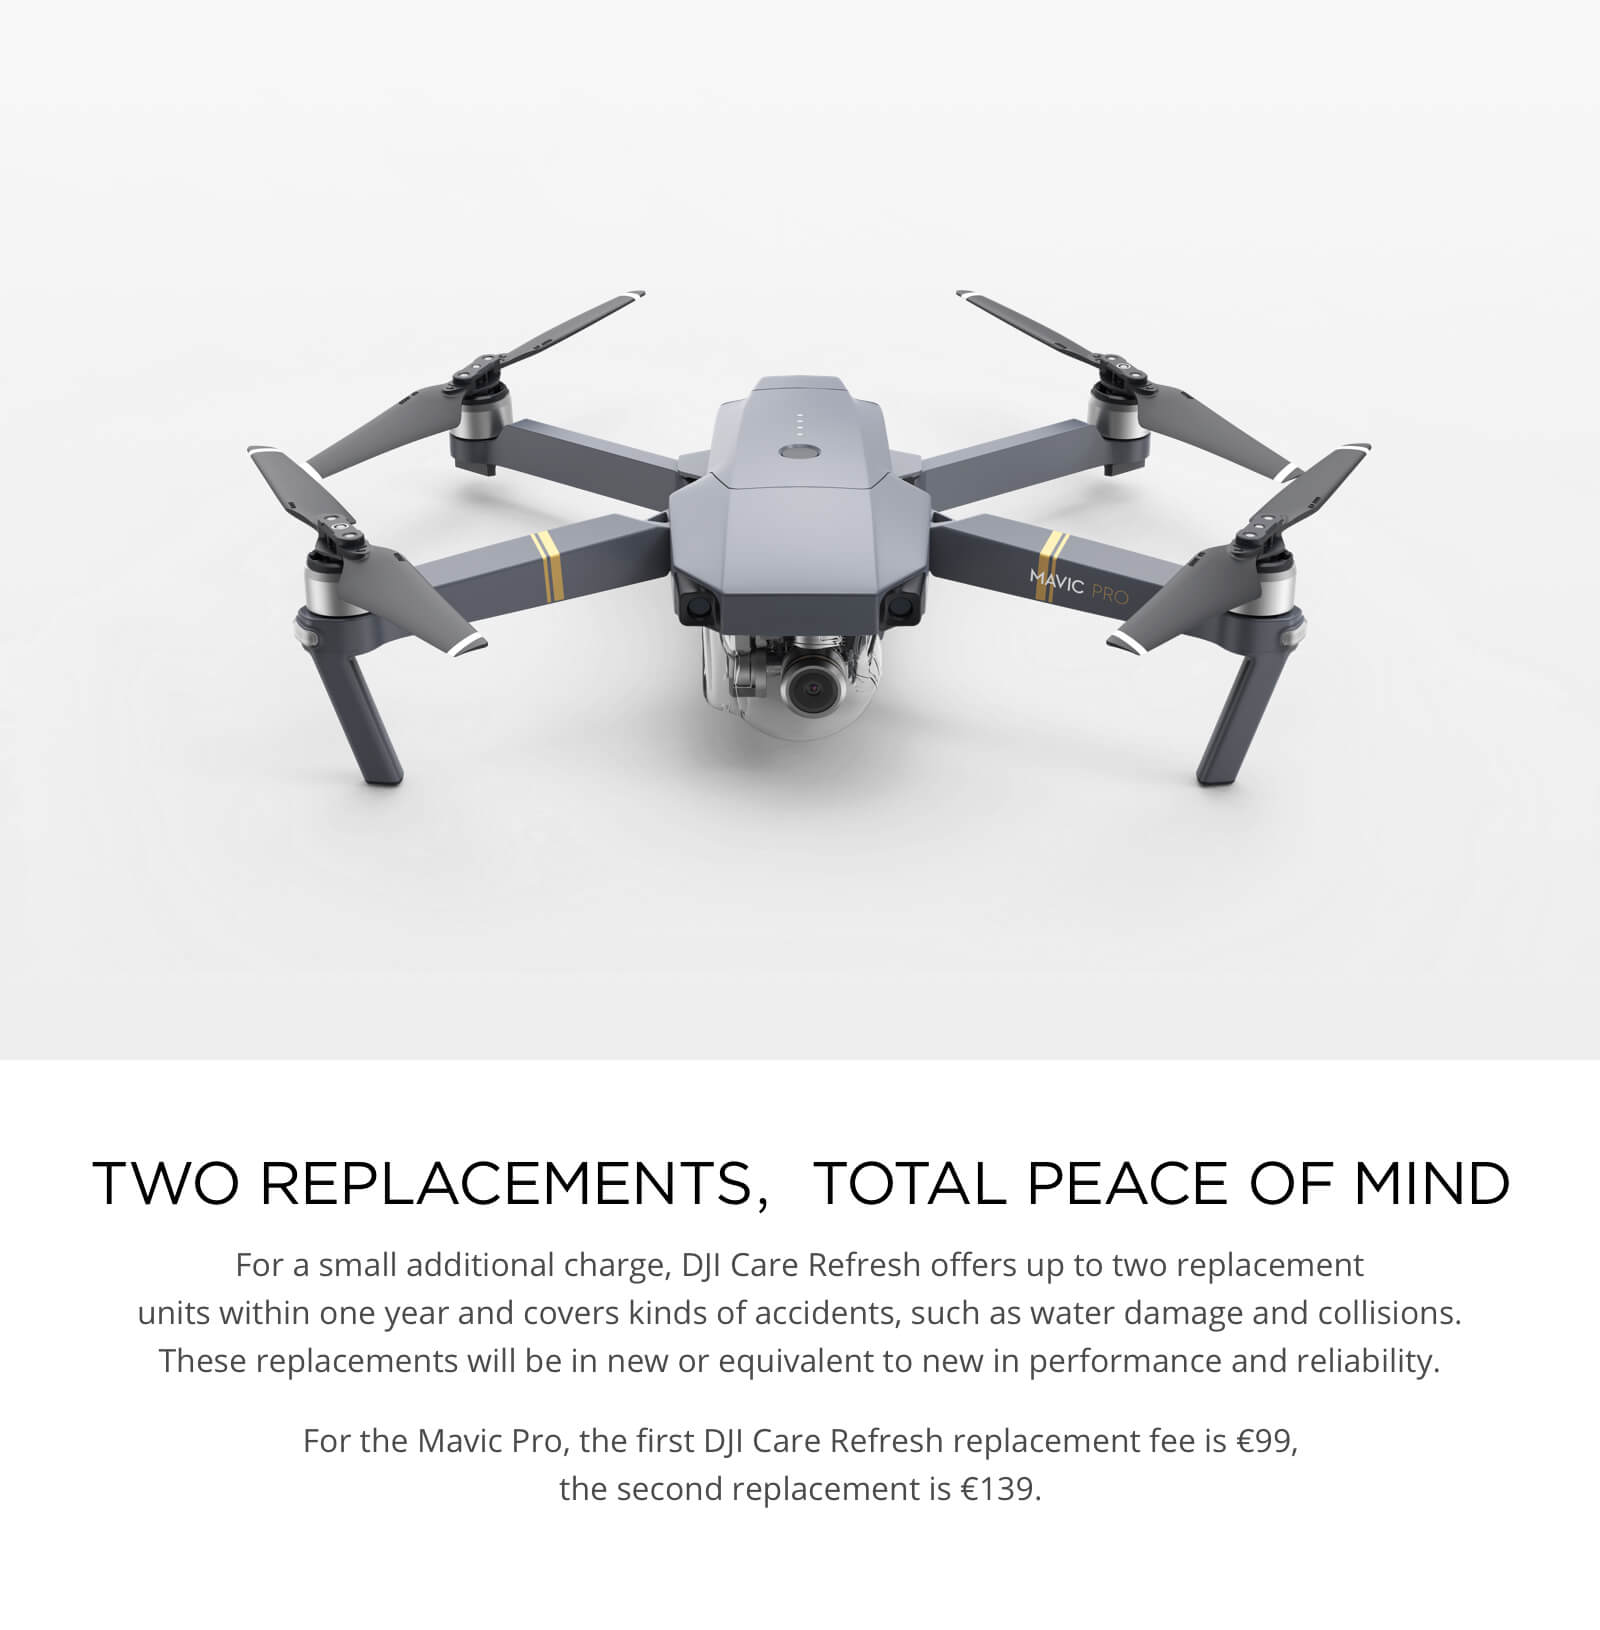 05Two%20Replacements%uFF0CTotal%20Peace%20of%20mind%20mavic%20pro.jpg